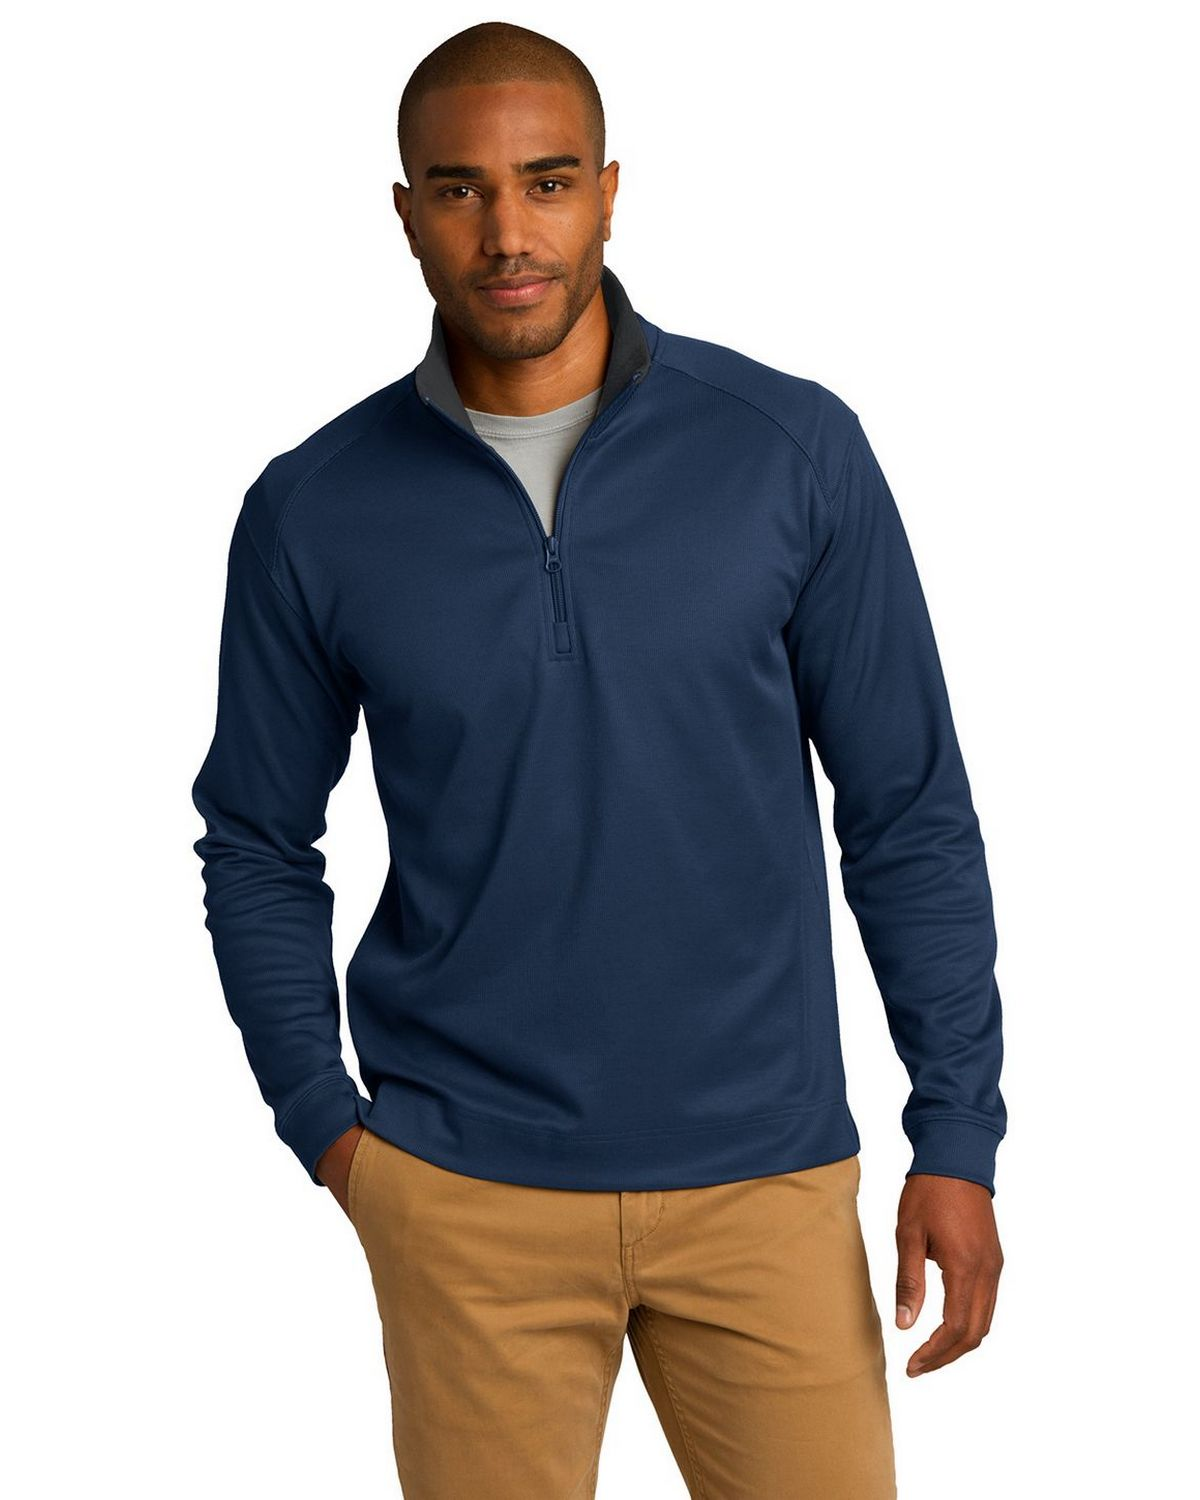 Port Authority K805 Heavyweight Zip Pullover